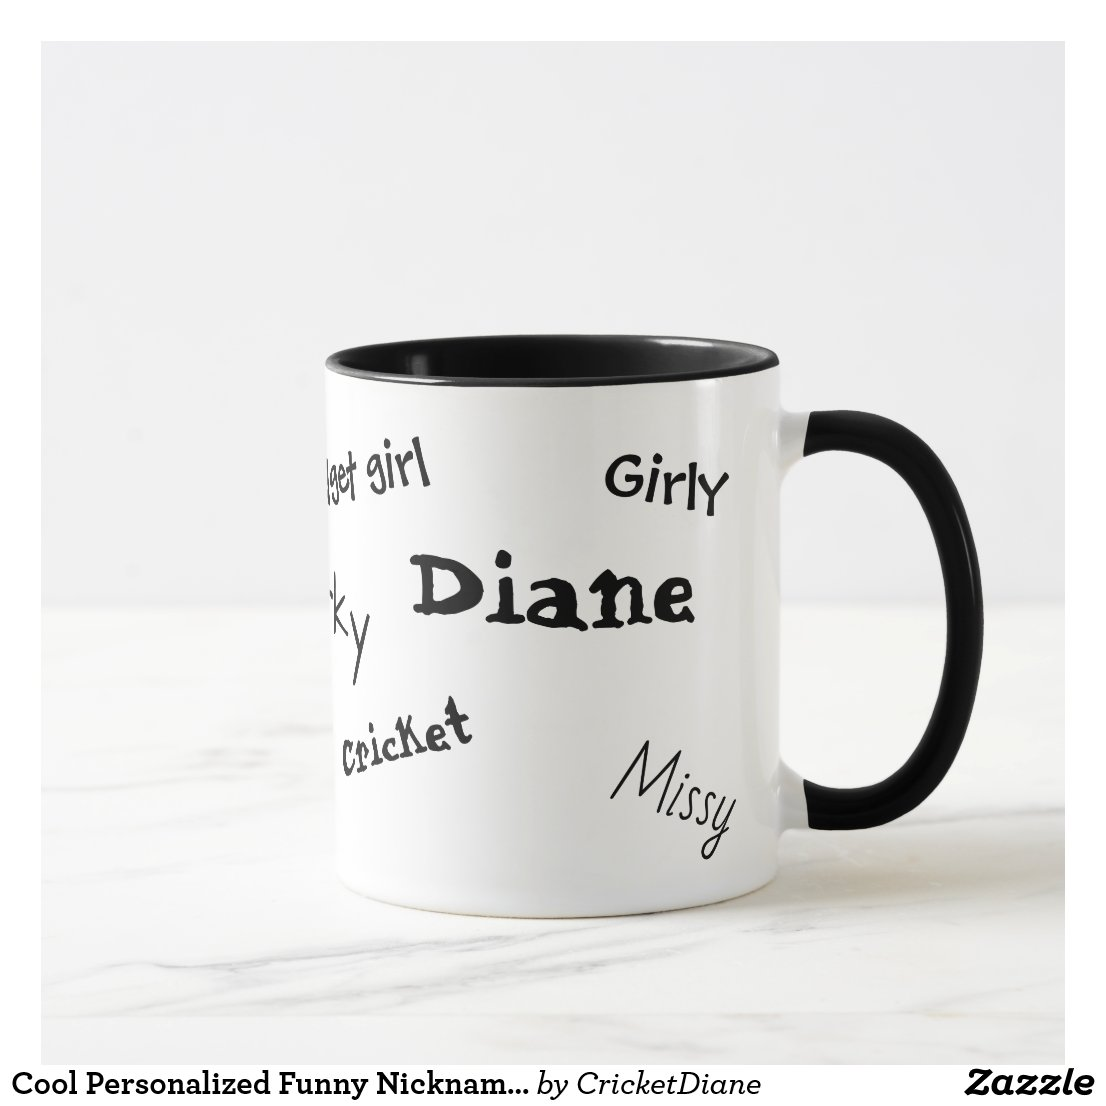 Cool Customized Funny Nicknames Coffee Mug